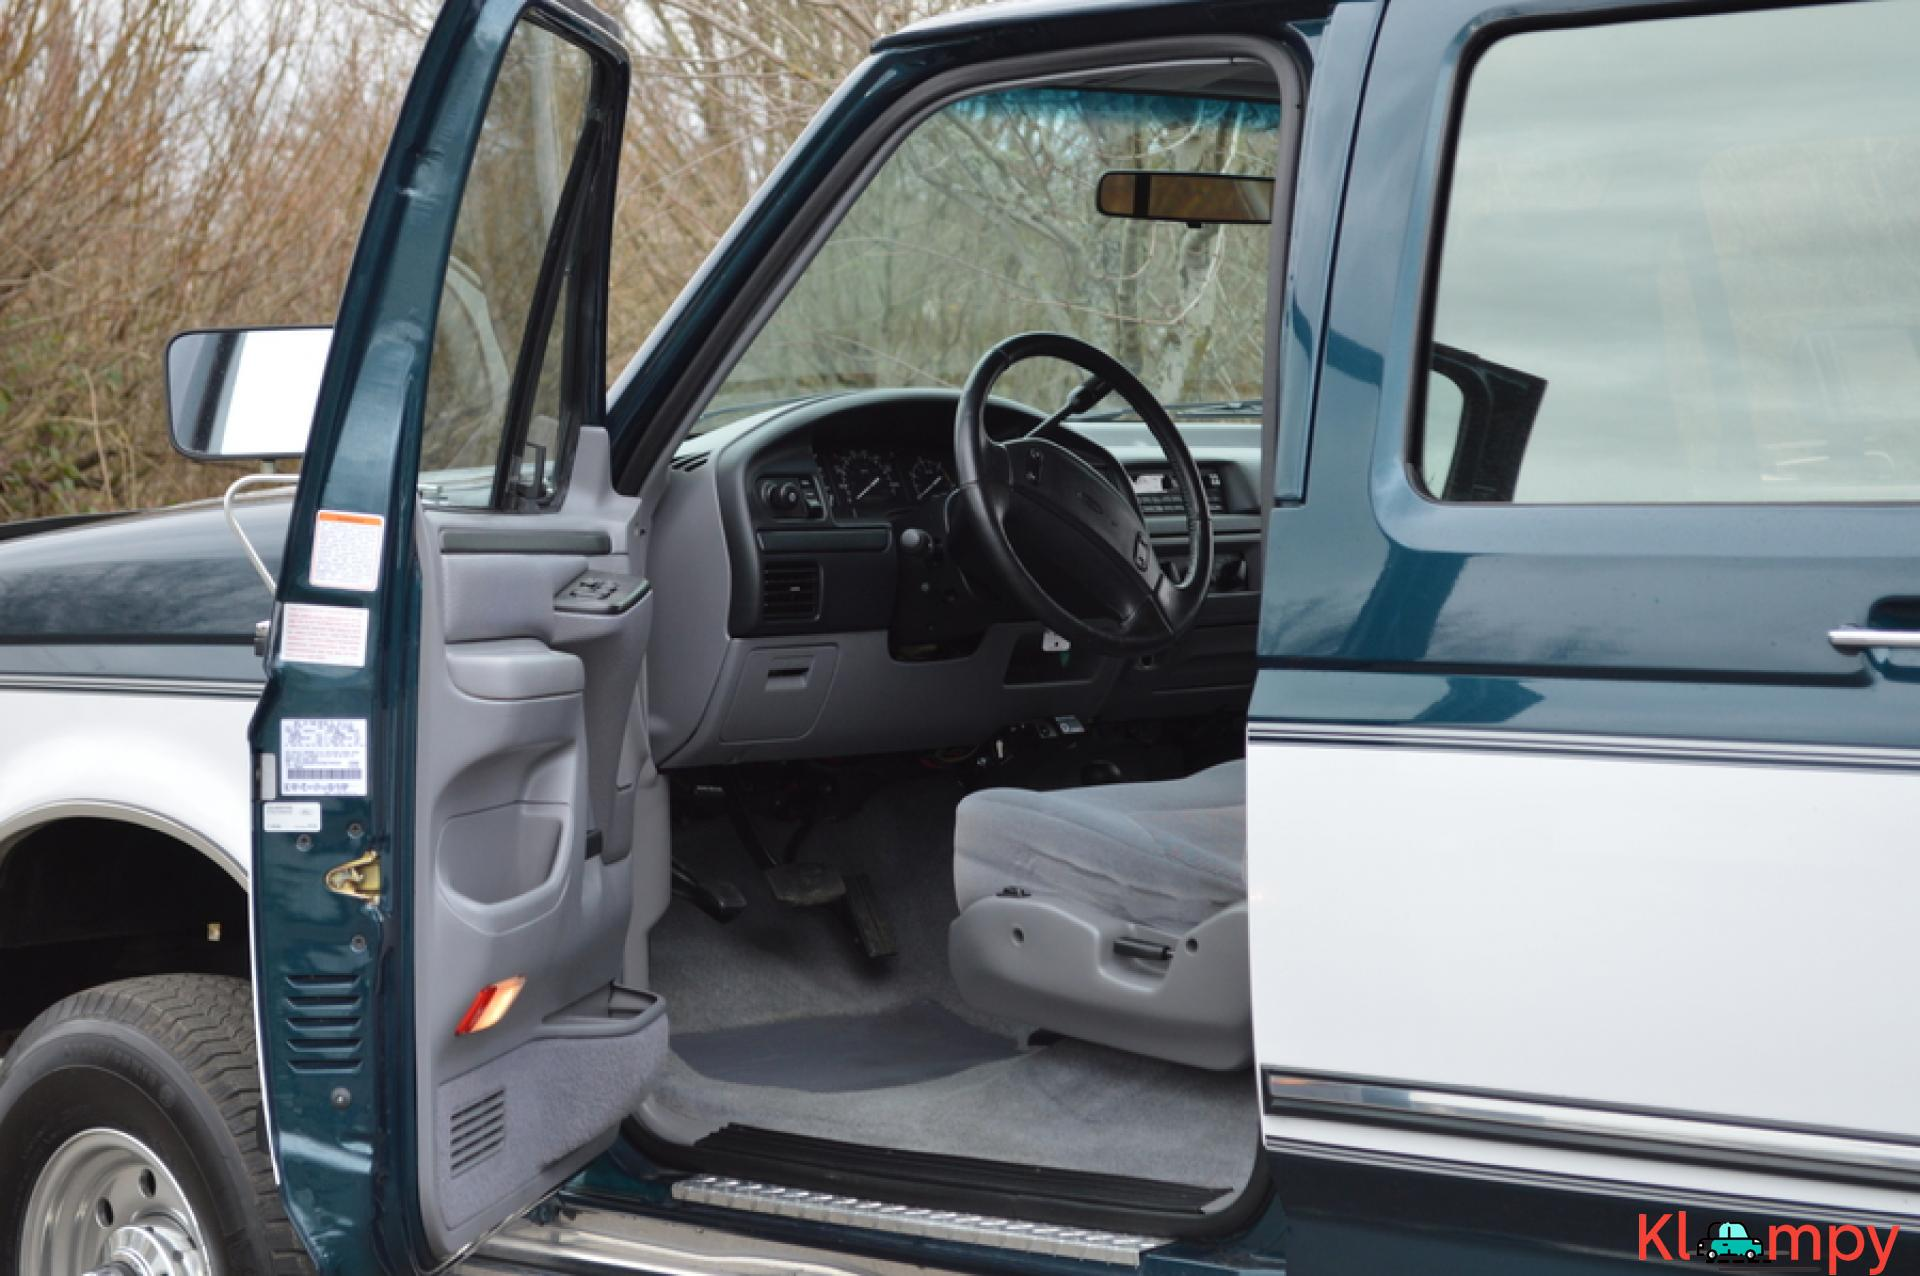 1997 FORD F-350 CREW CAB LONG BED 4WD 7.3L - 18/20